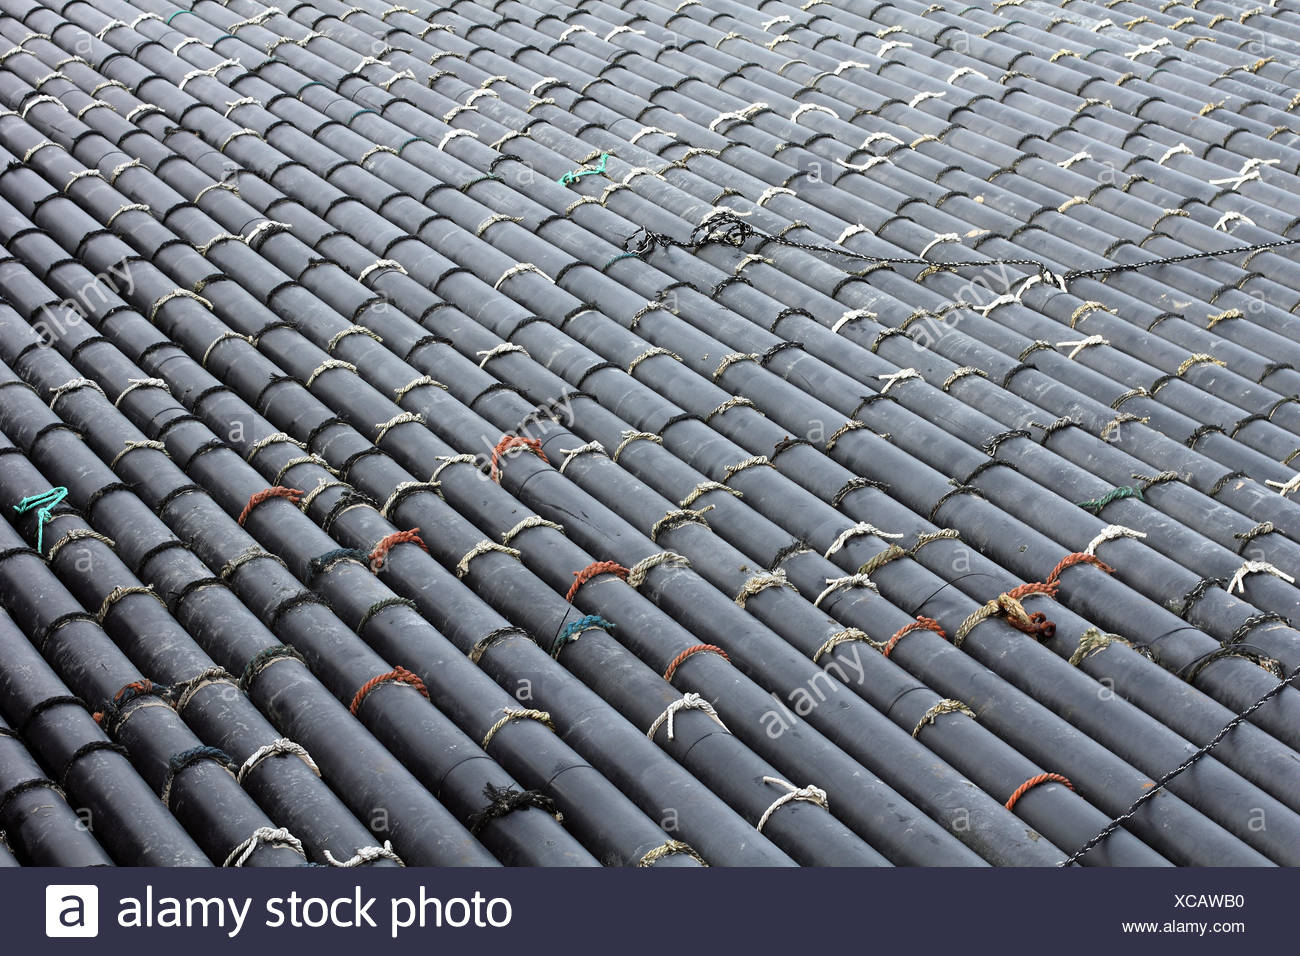 Pipes of a mussel seed capturing installation - Stock Image